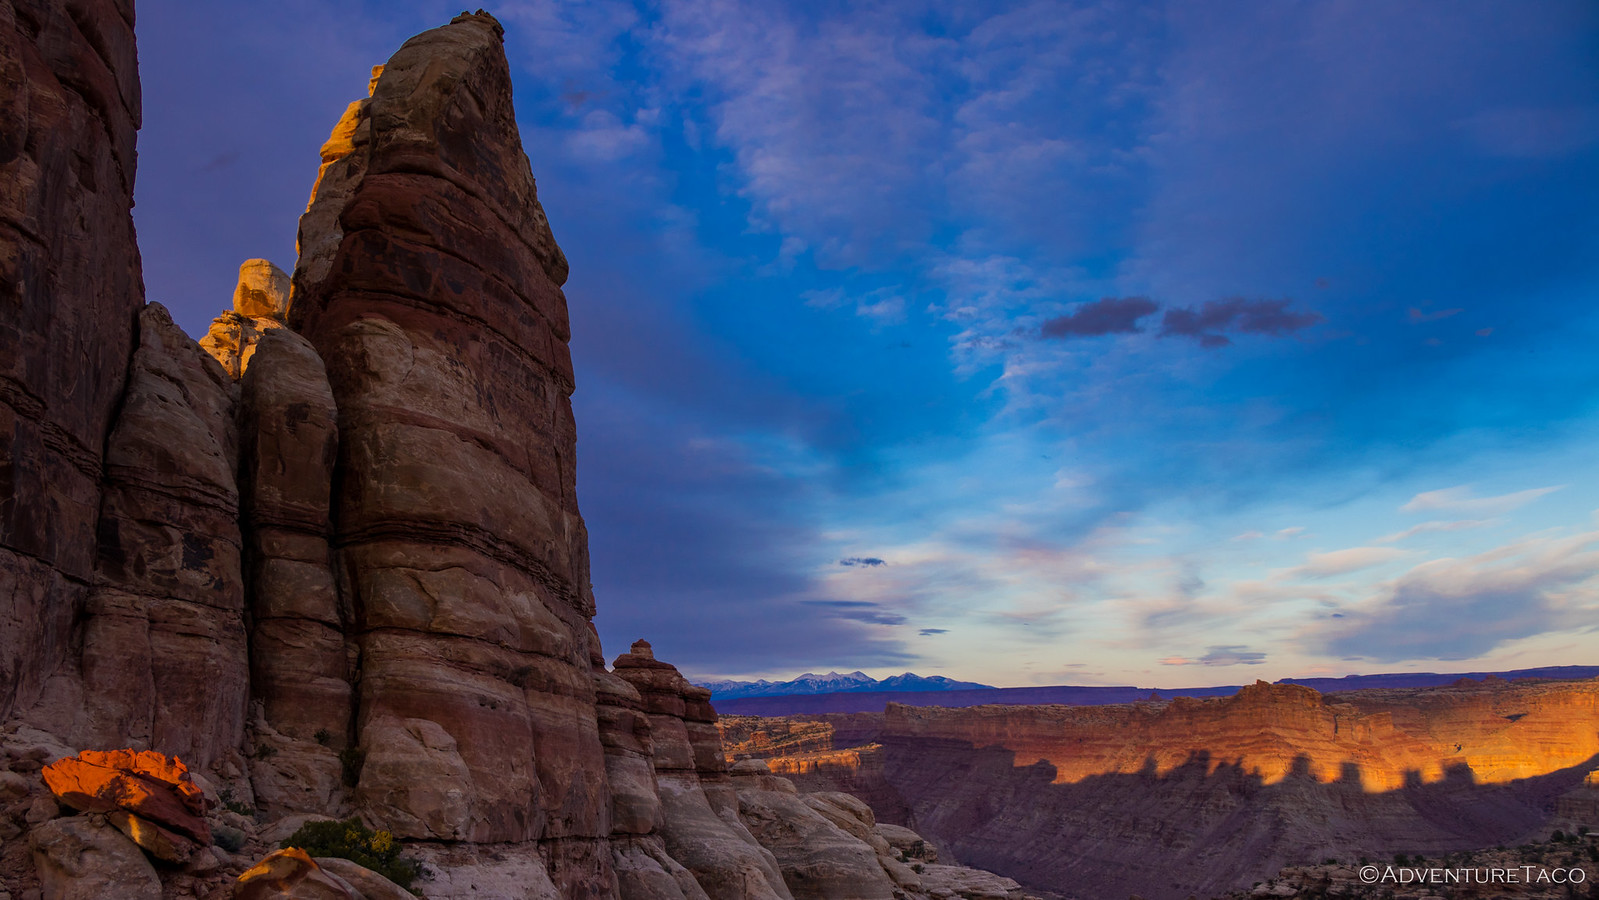 The Doll House at sunset, Canyonlands National Park